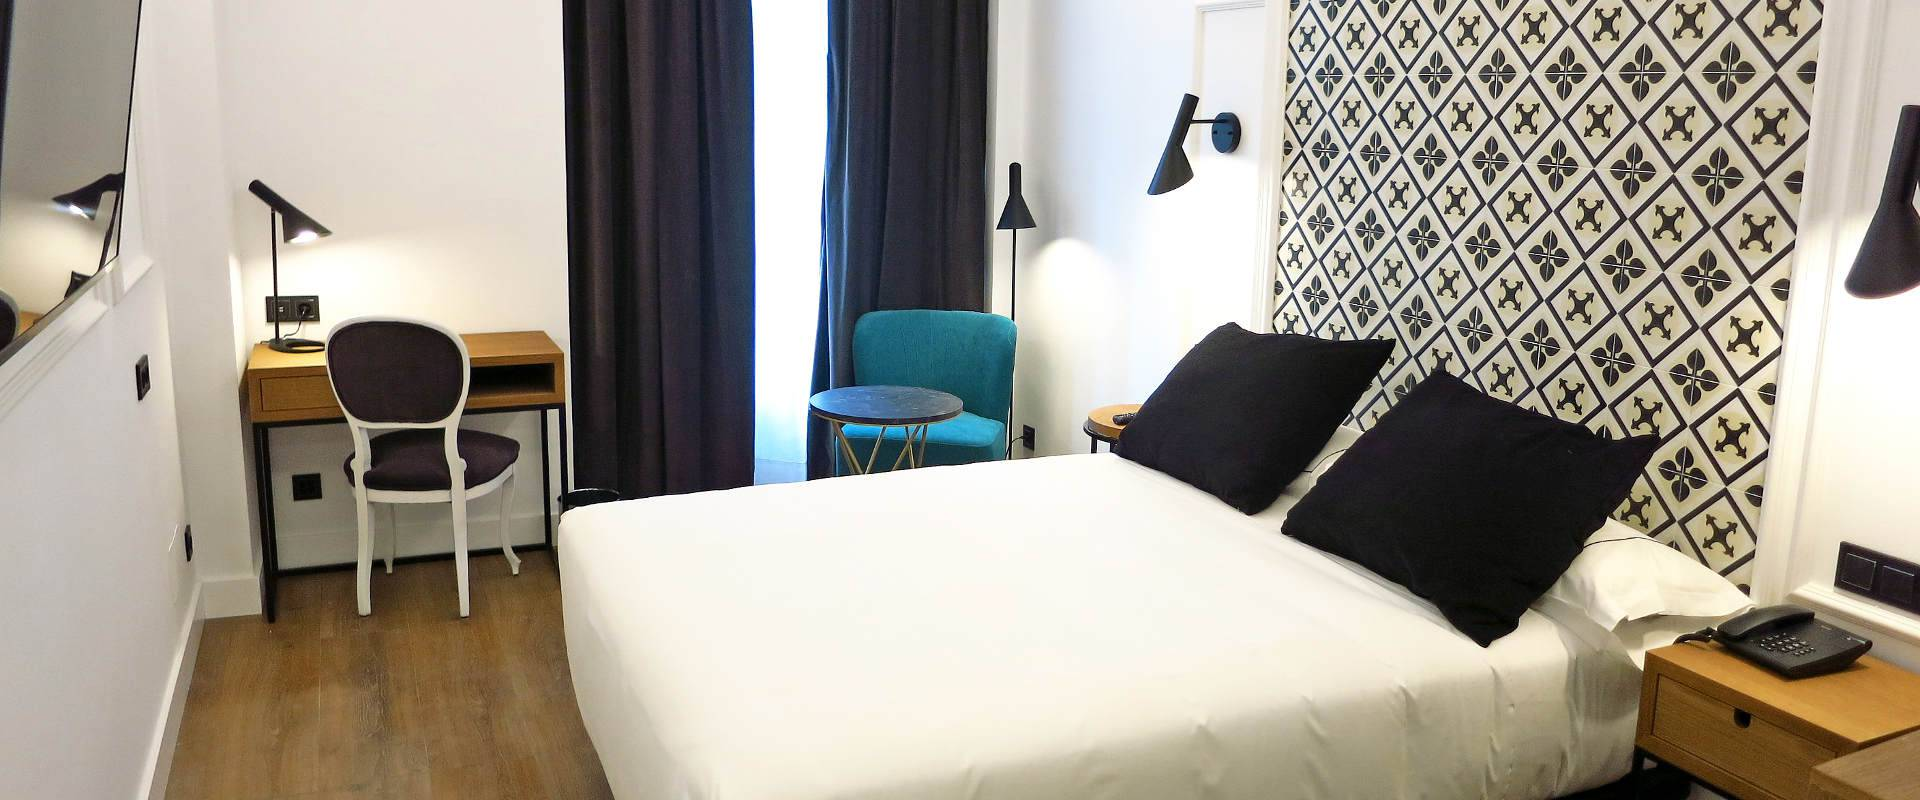 The best facilities Valladolid hotels